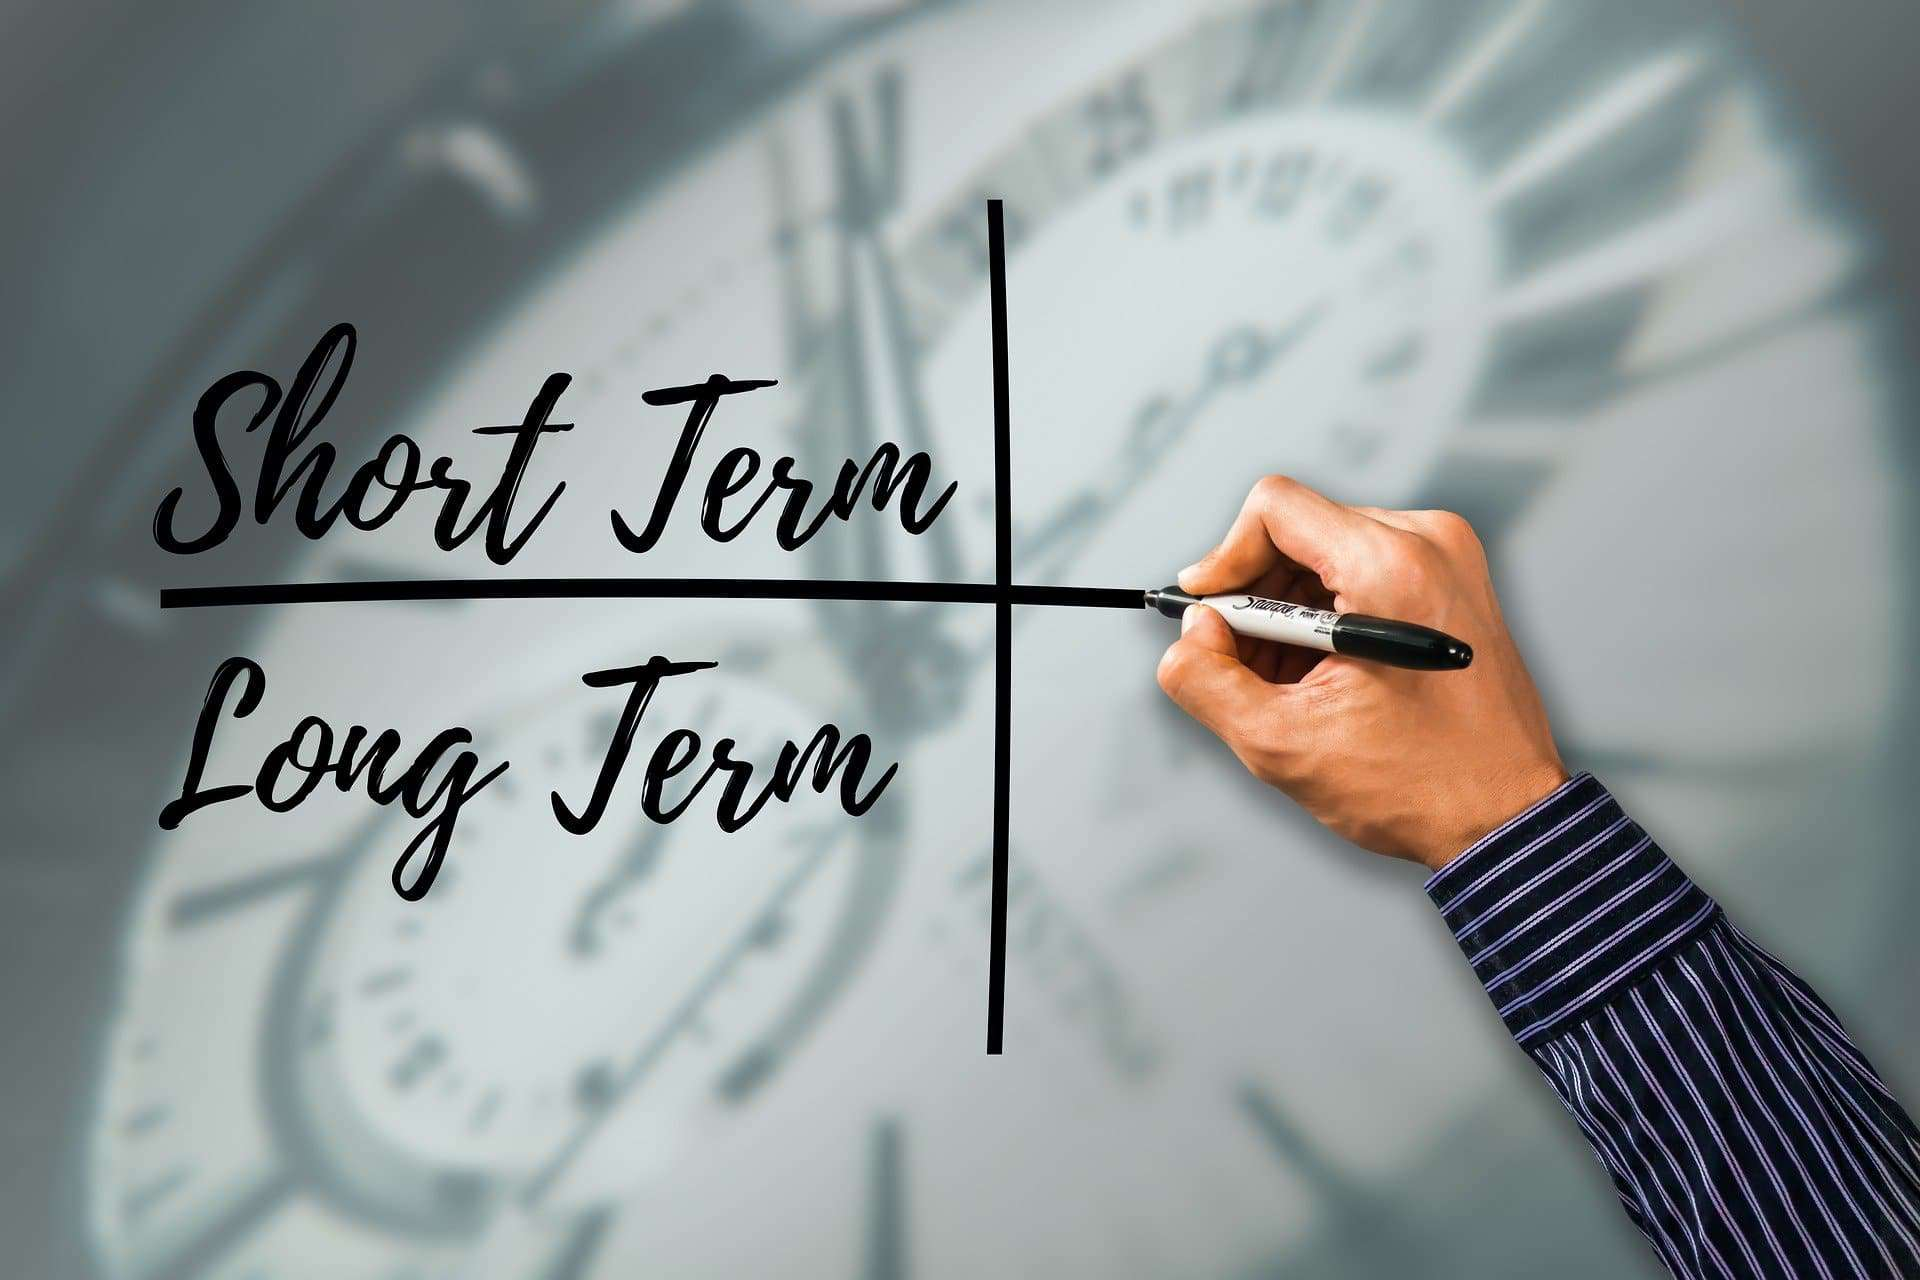 Long-Term vs Short-Term https://pixabay.com/illustrations/in-the-short-term-in-the-long-term-4488315/